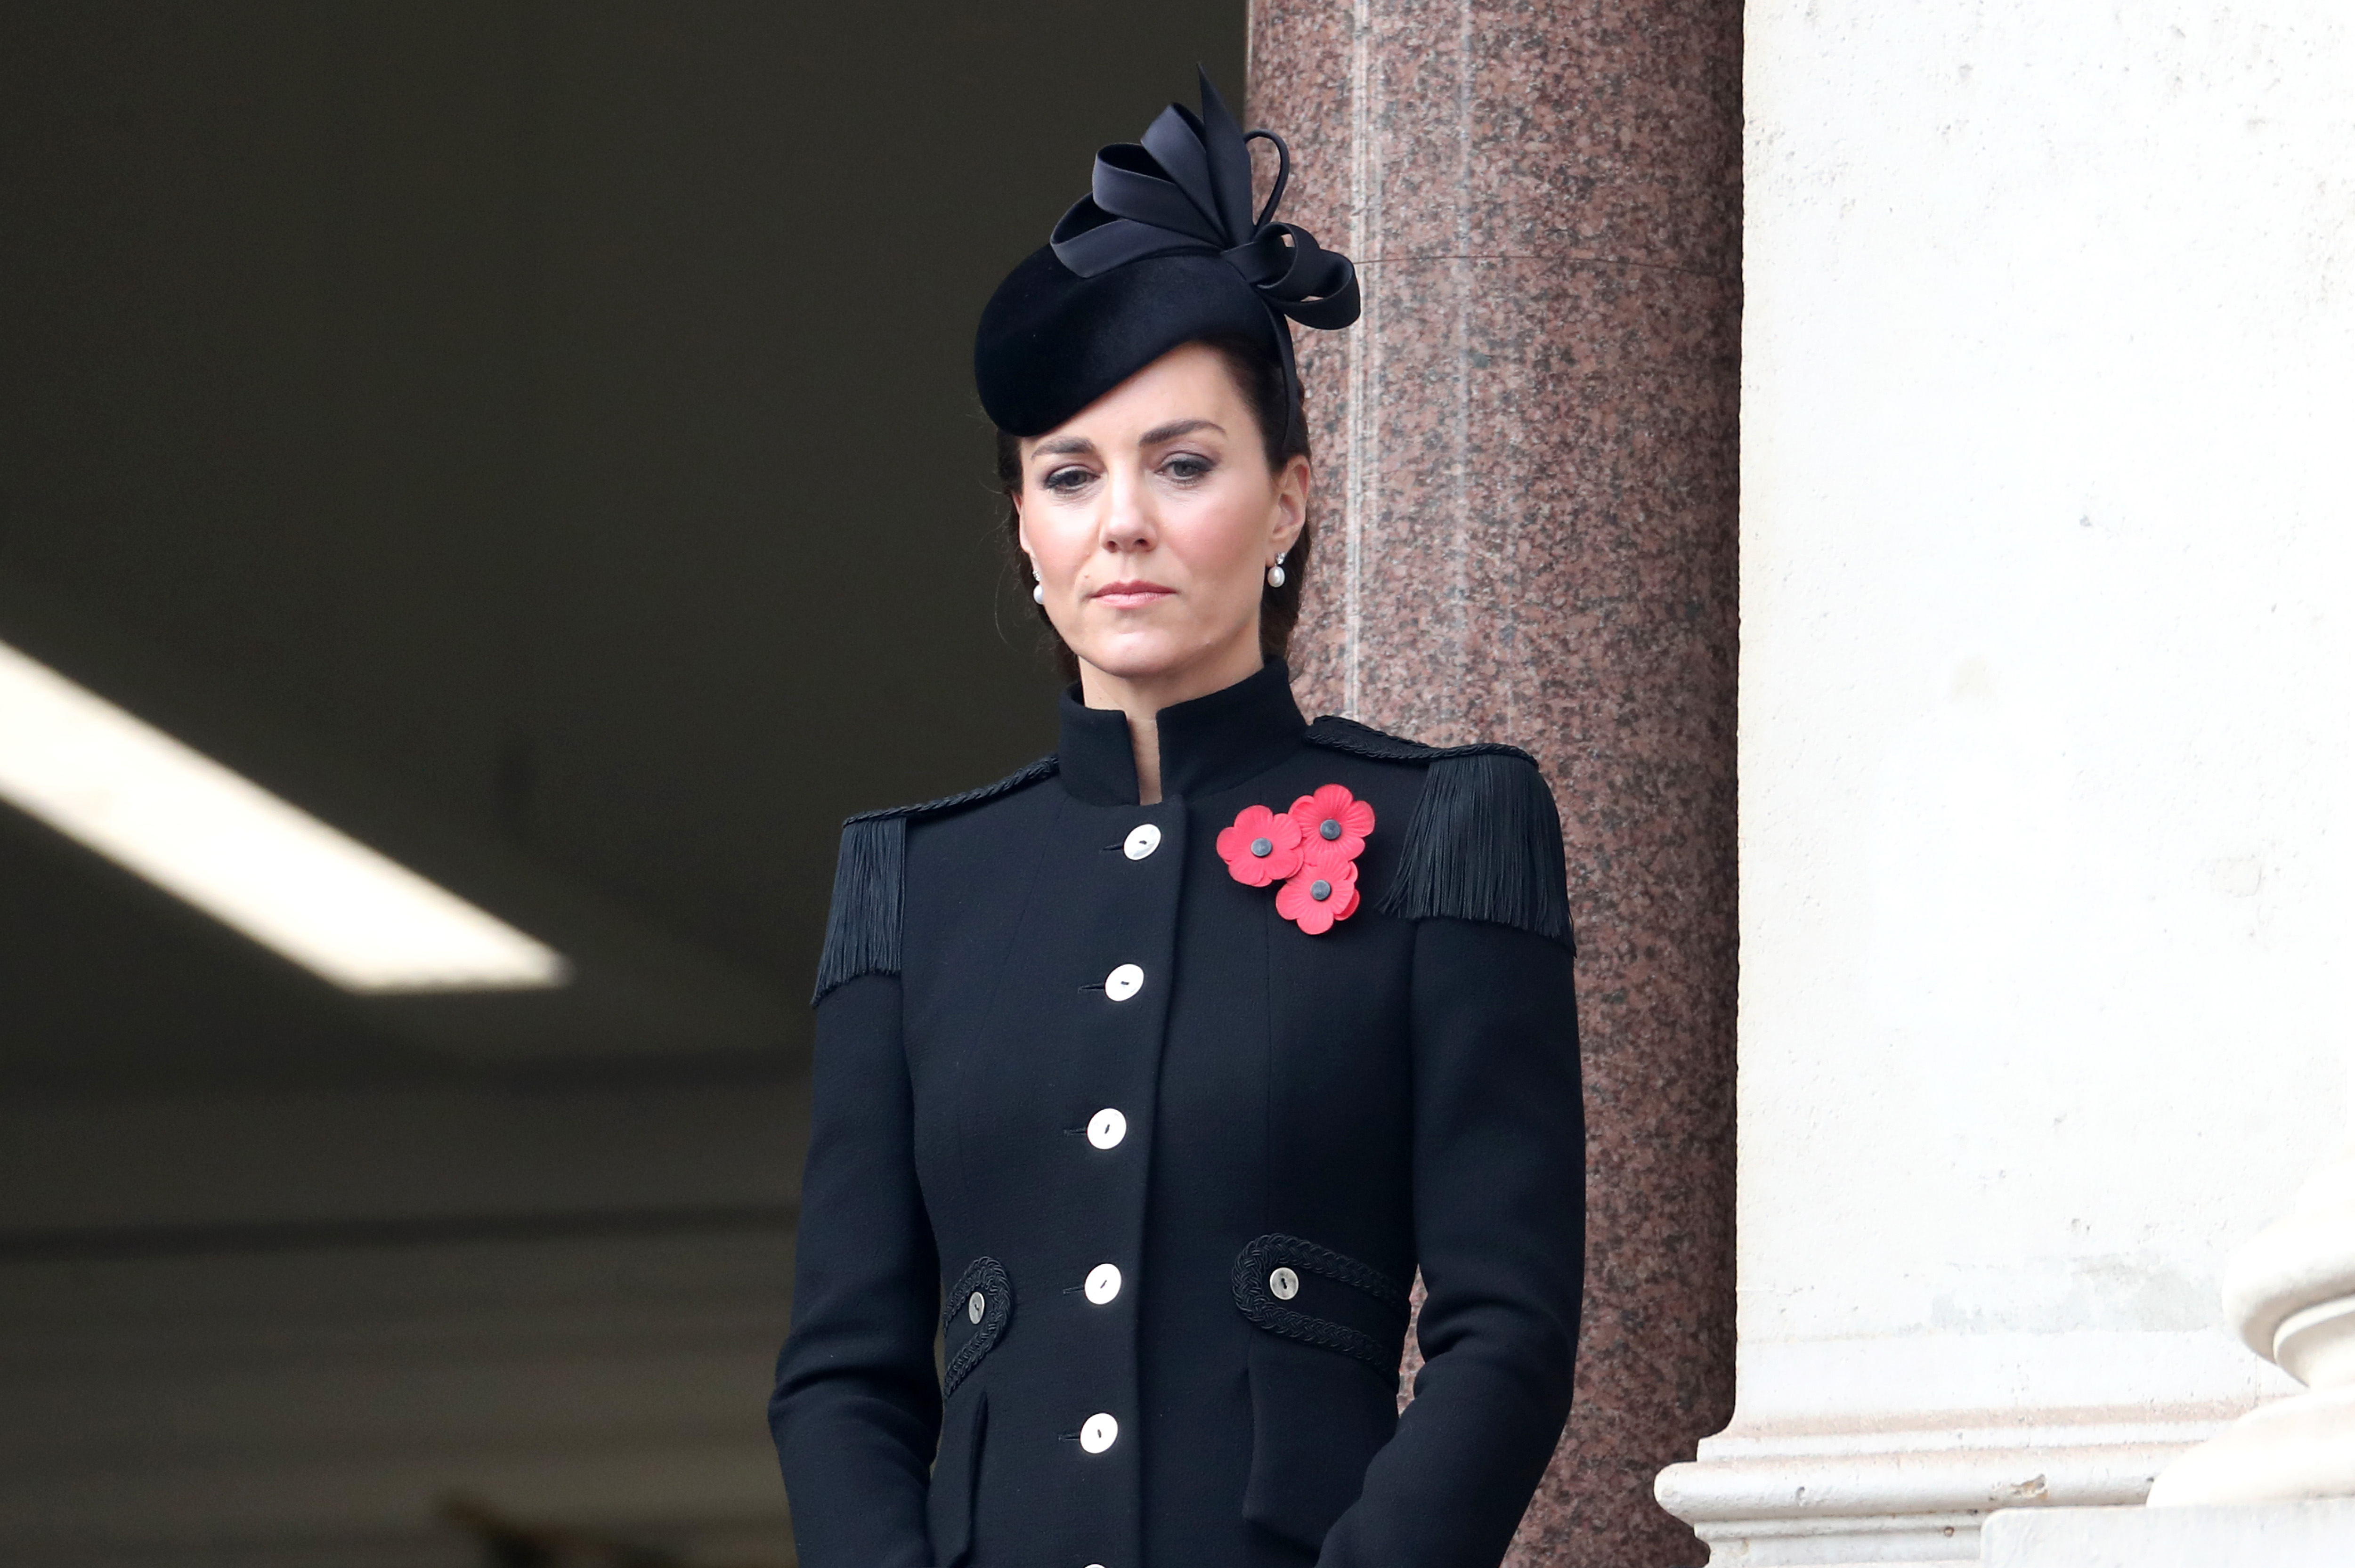 Remembrance Sunday. The Duchess of Cambridge stands on a balcony during the Remembrance Sunday service at the Cenotaph, in Whitehall, London. Picture date: Sunday November 8, 2020. See PA story MEMORIAL Remembrance. Photo credit should read: Chris Jackson/PA Wire URN:56522254 (Press Association via AP Images)